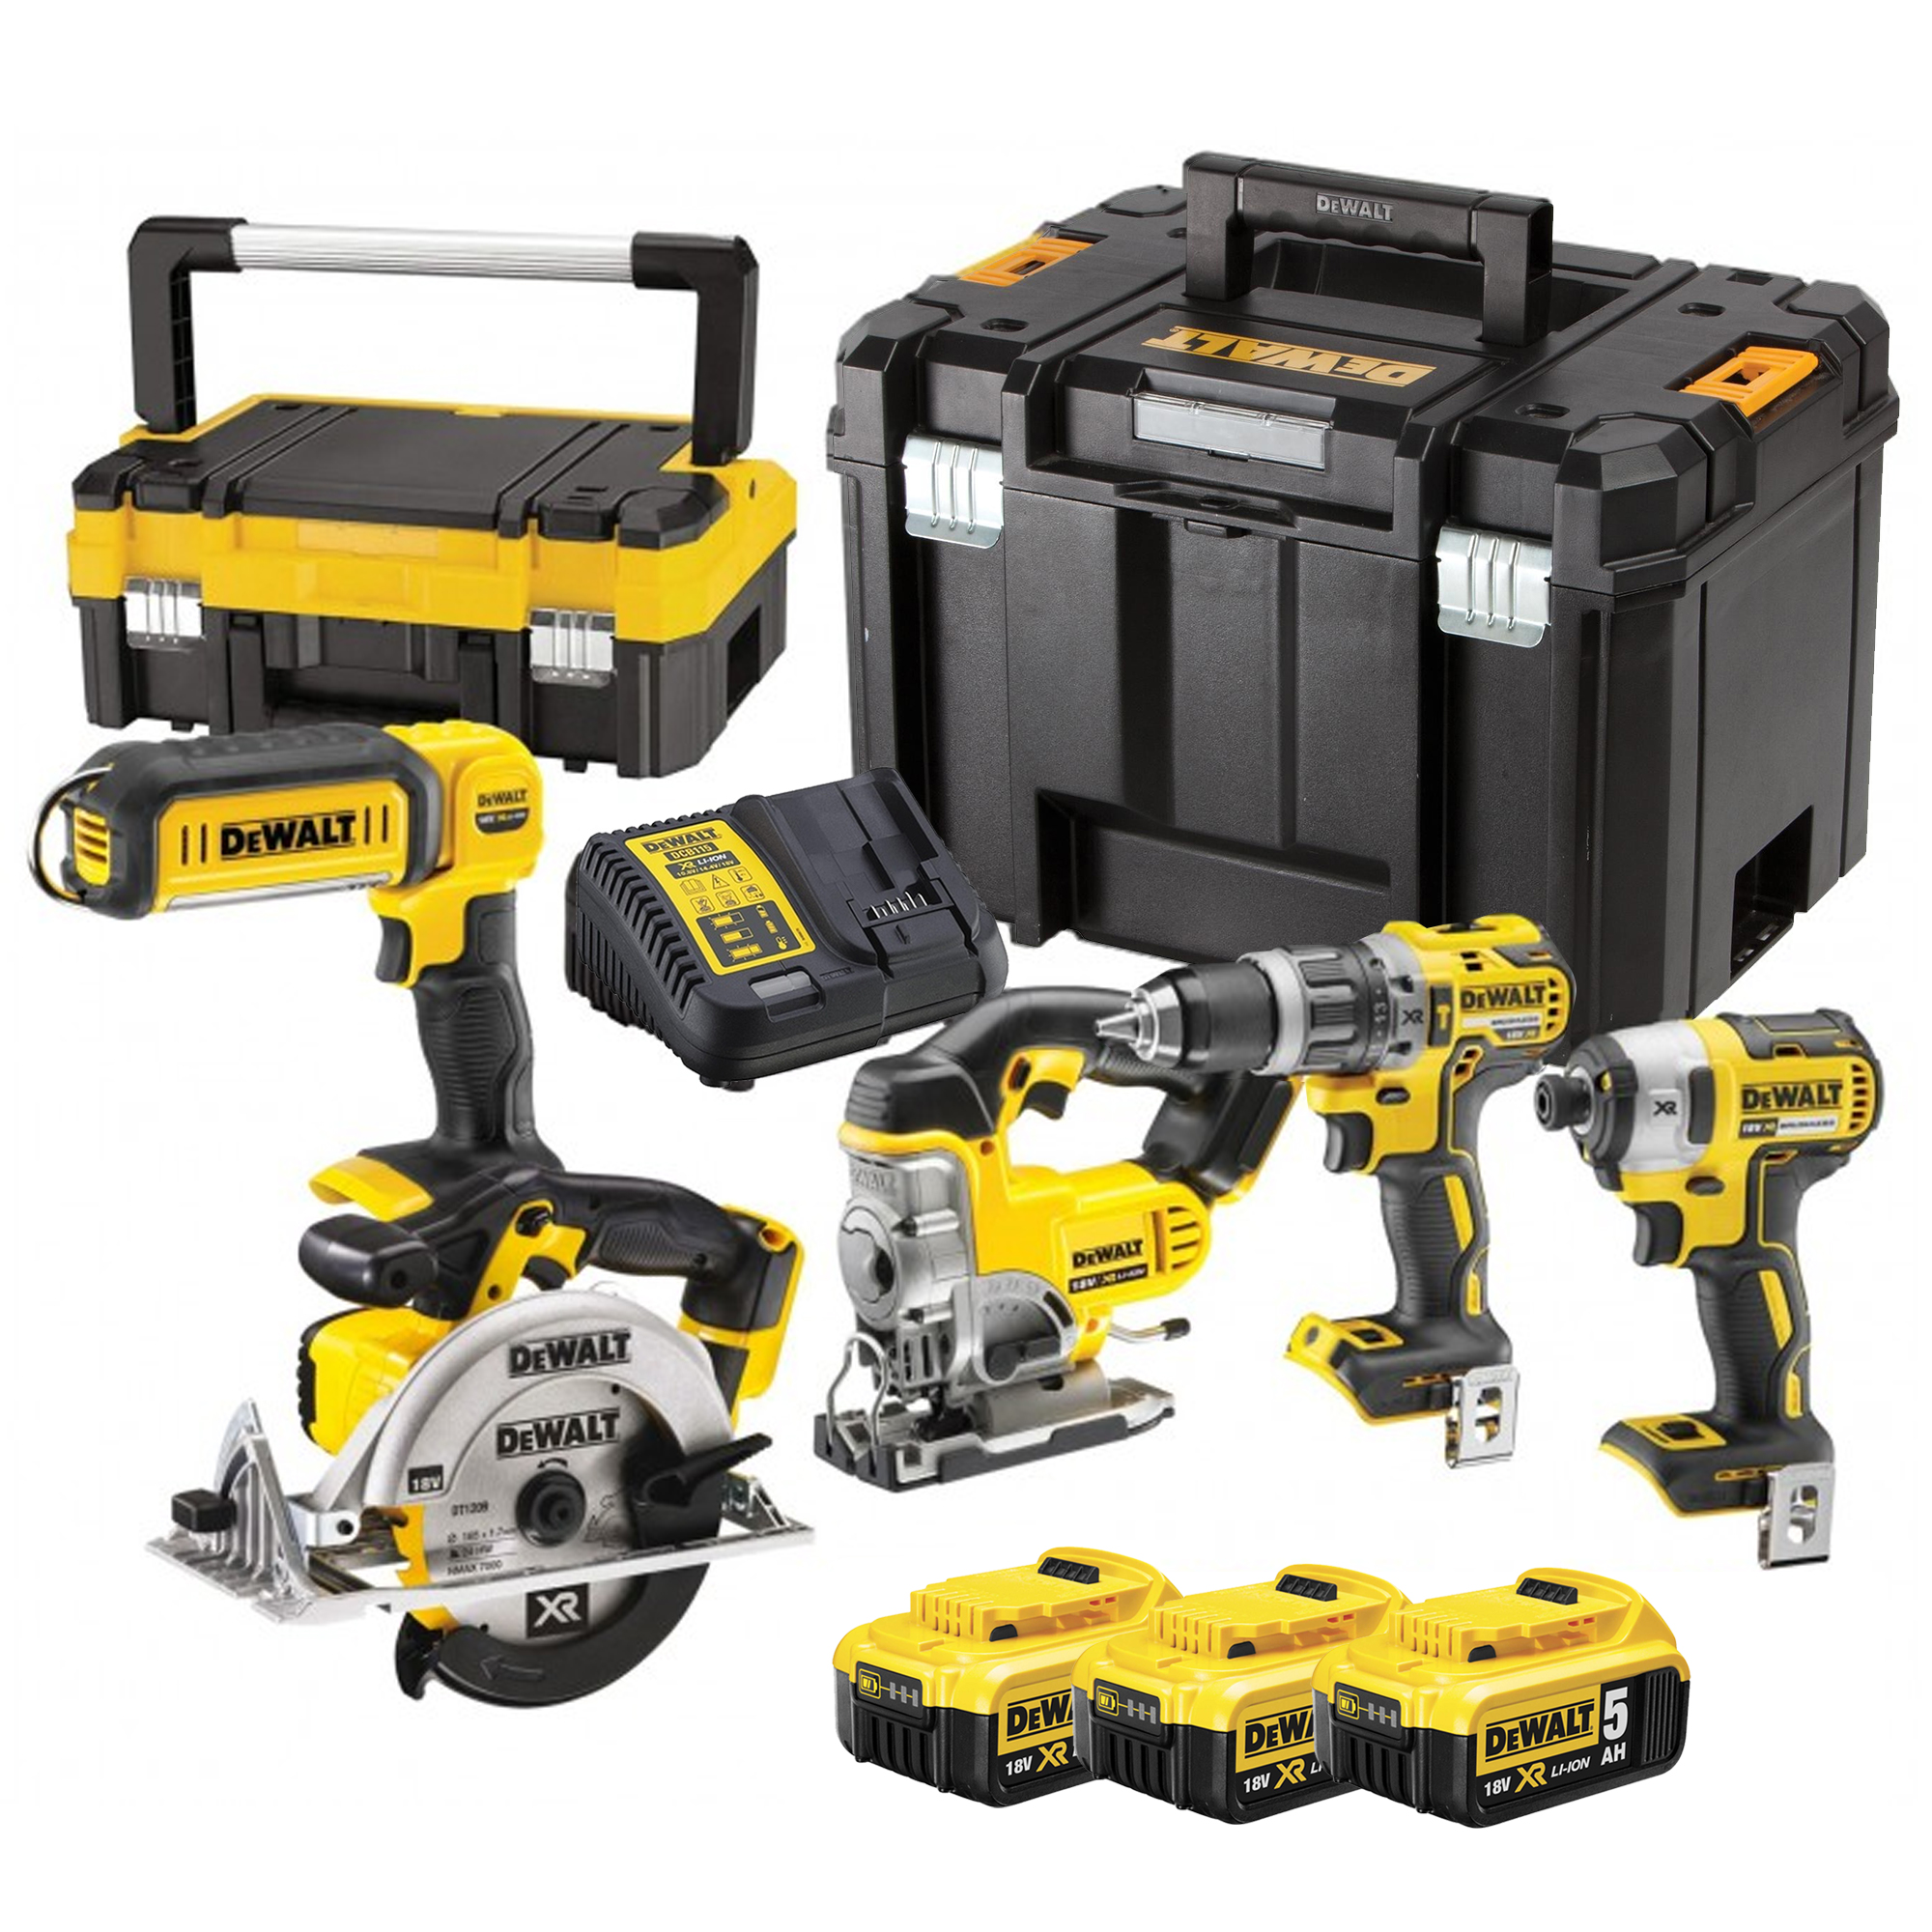 dewalt dck551p3t dewalt 18v lithium ion 5 piece package. Black Bedroom Furniture Sets. Home Design Ideas